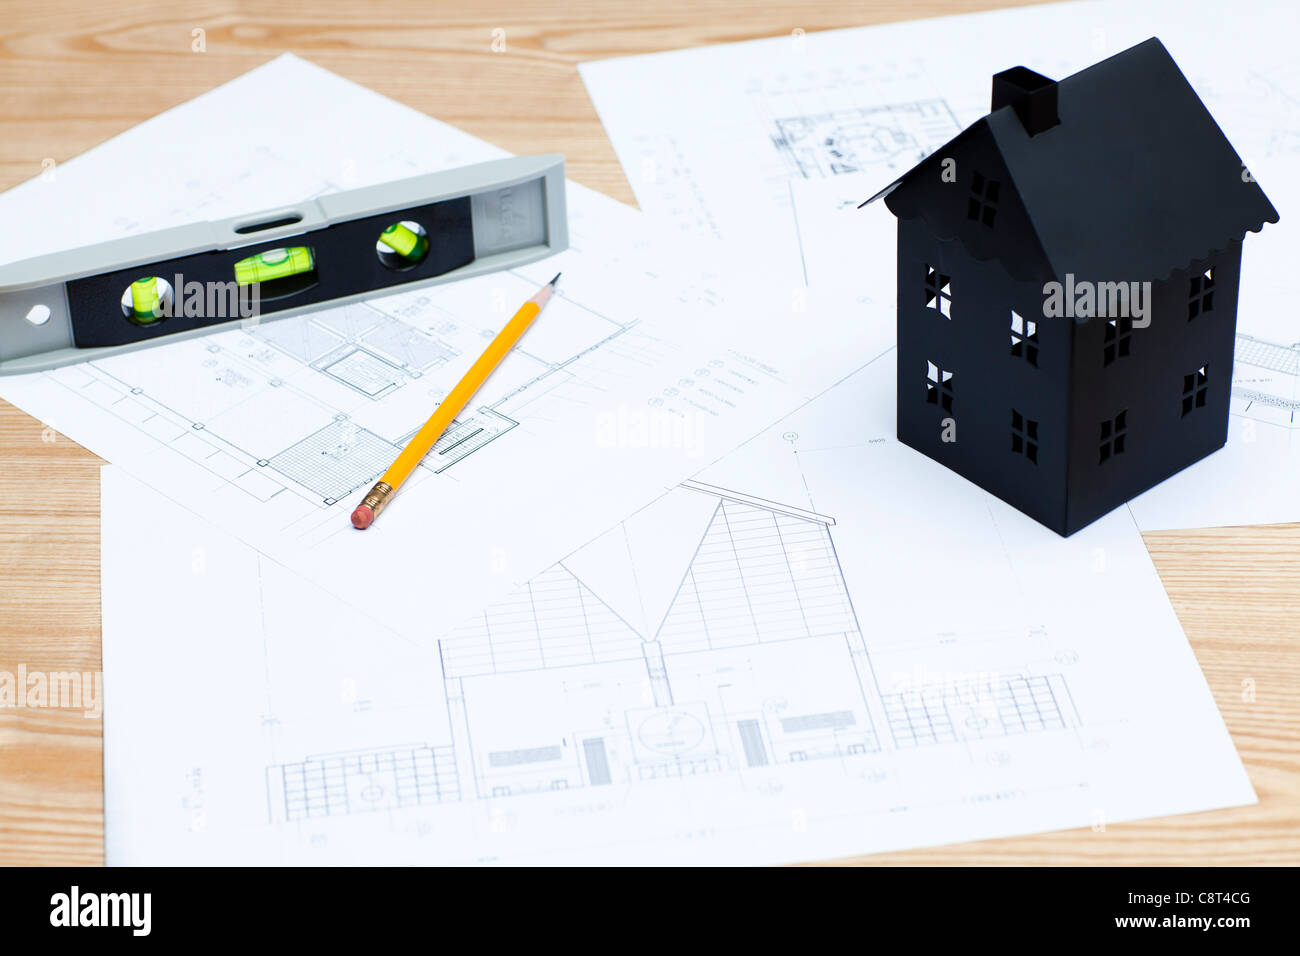 Model home on blueprint along with pencil and spirit level - Stock Image